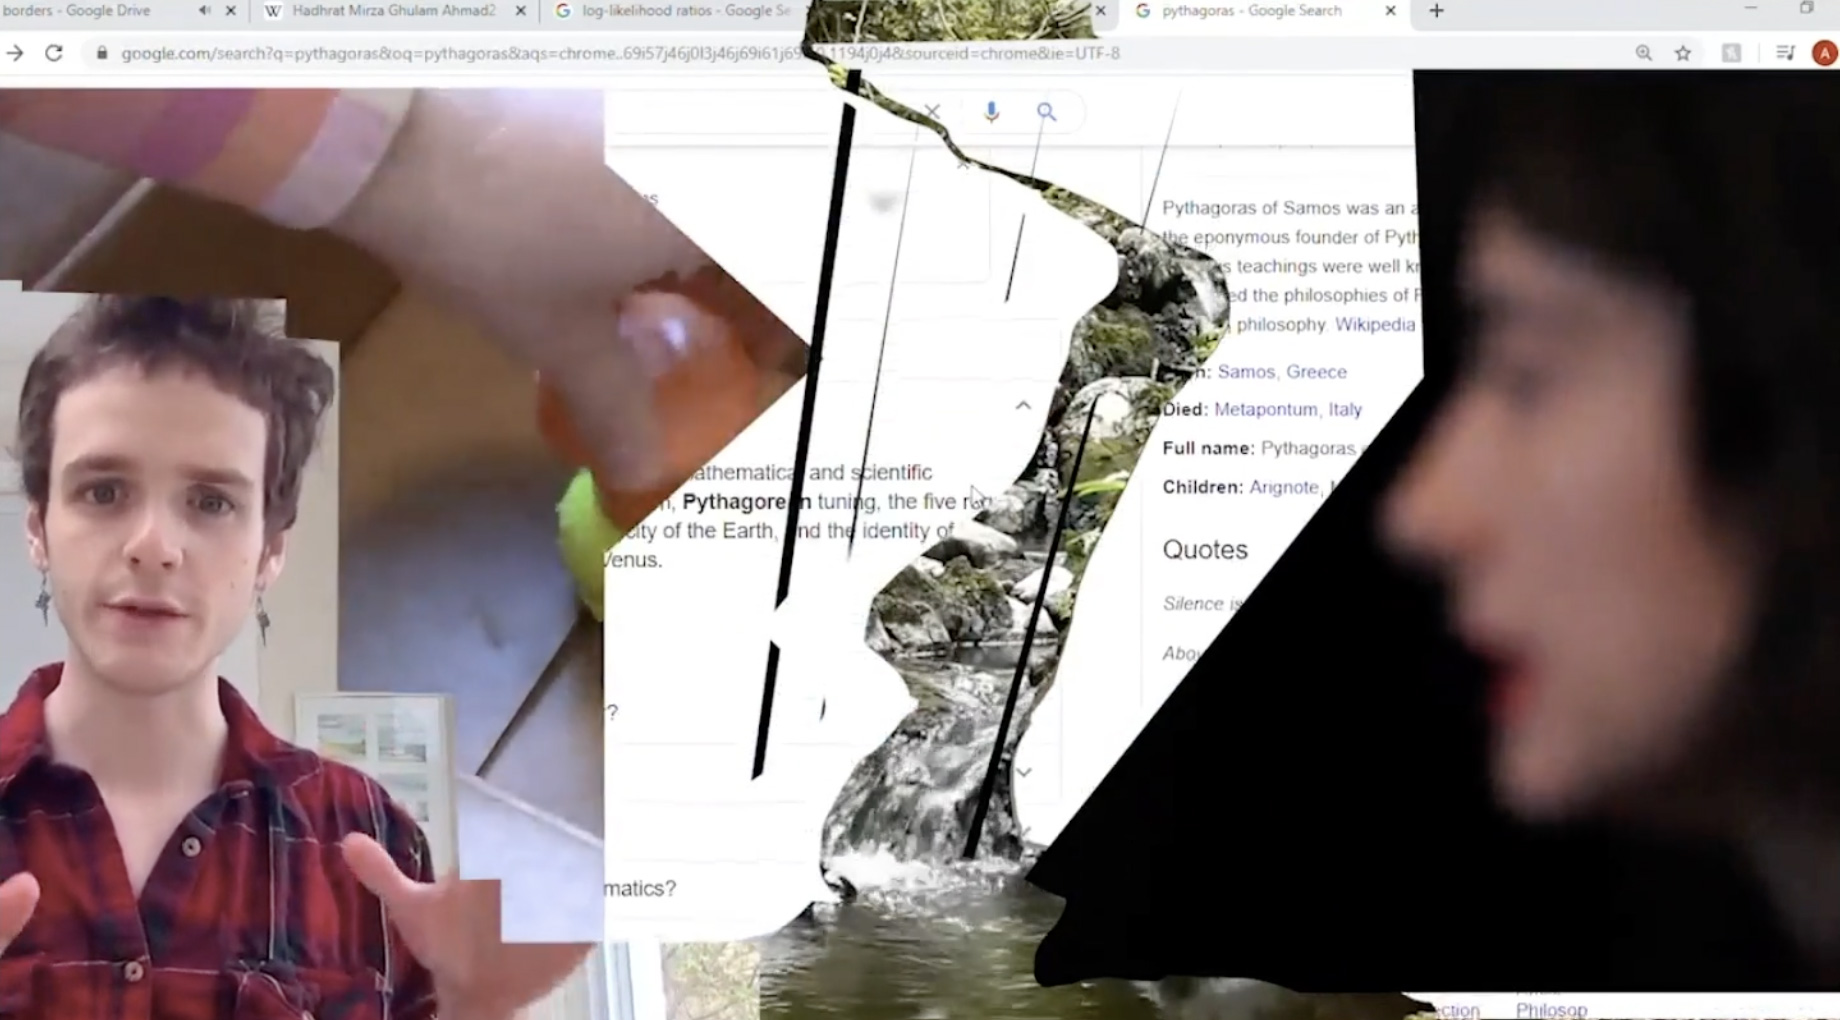 Multiple screenshots are collaged together, including a google search of the Greek philosopher Pythagoras cut to reveal a waterfall behind. A blurry photo of a person's profile is shown on the right of the image while another person is seen talking on the left corner.